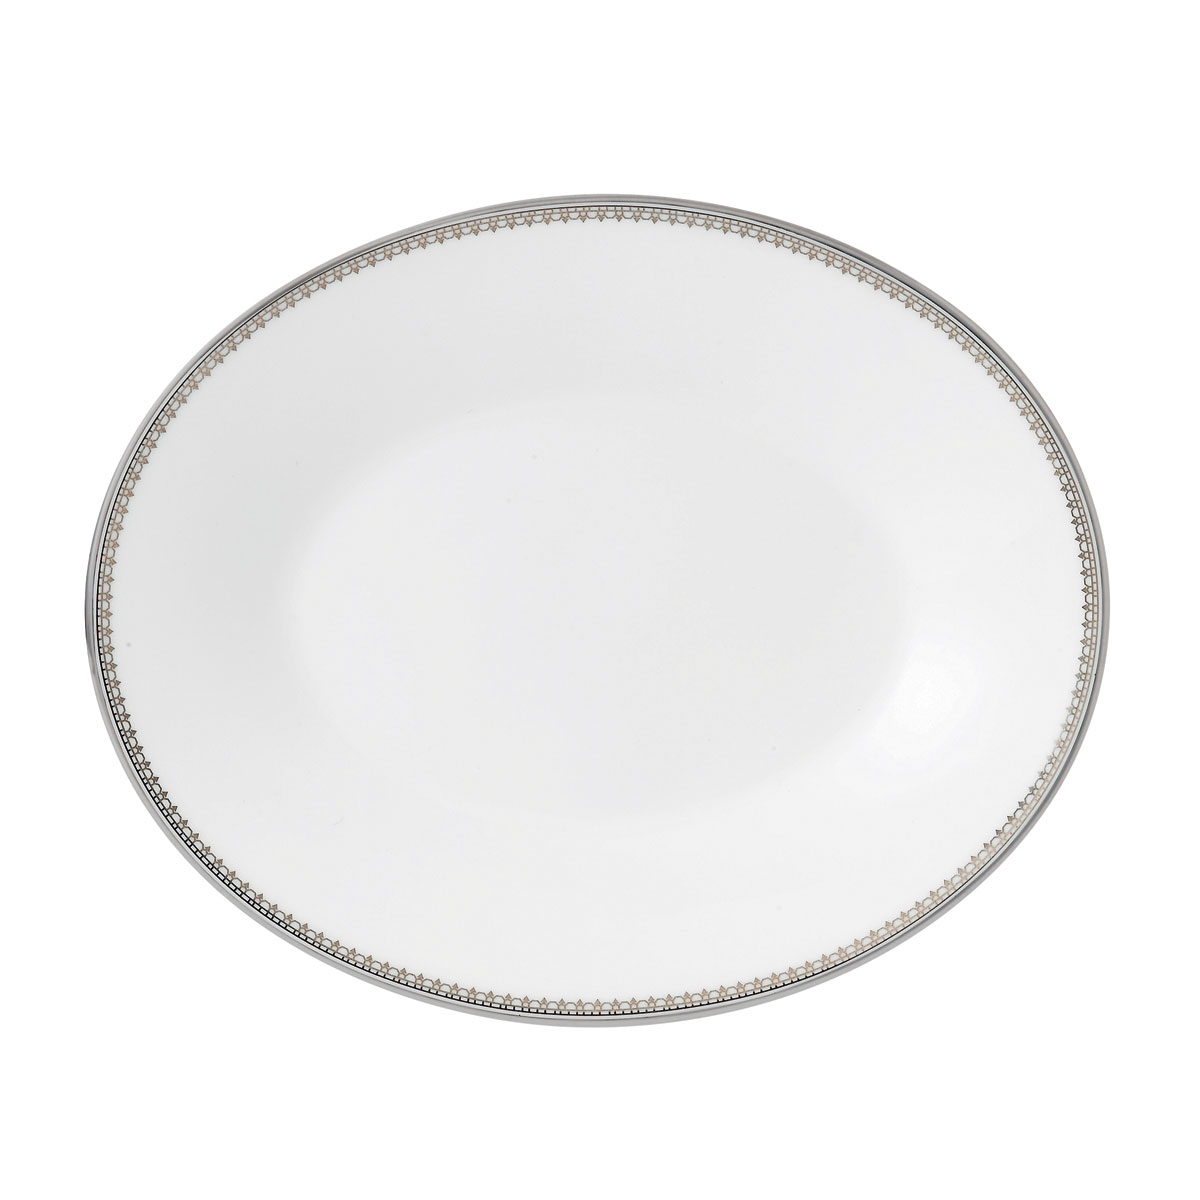 Vera Wang Wedgwood Vera Lace Gravy Stand Imperial